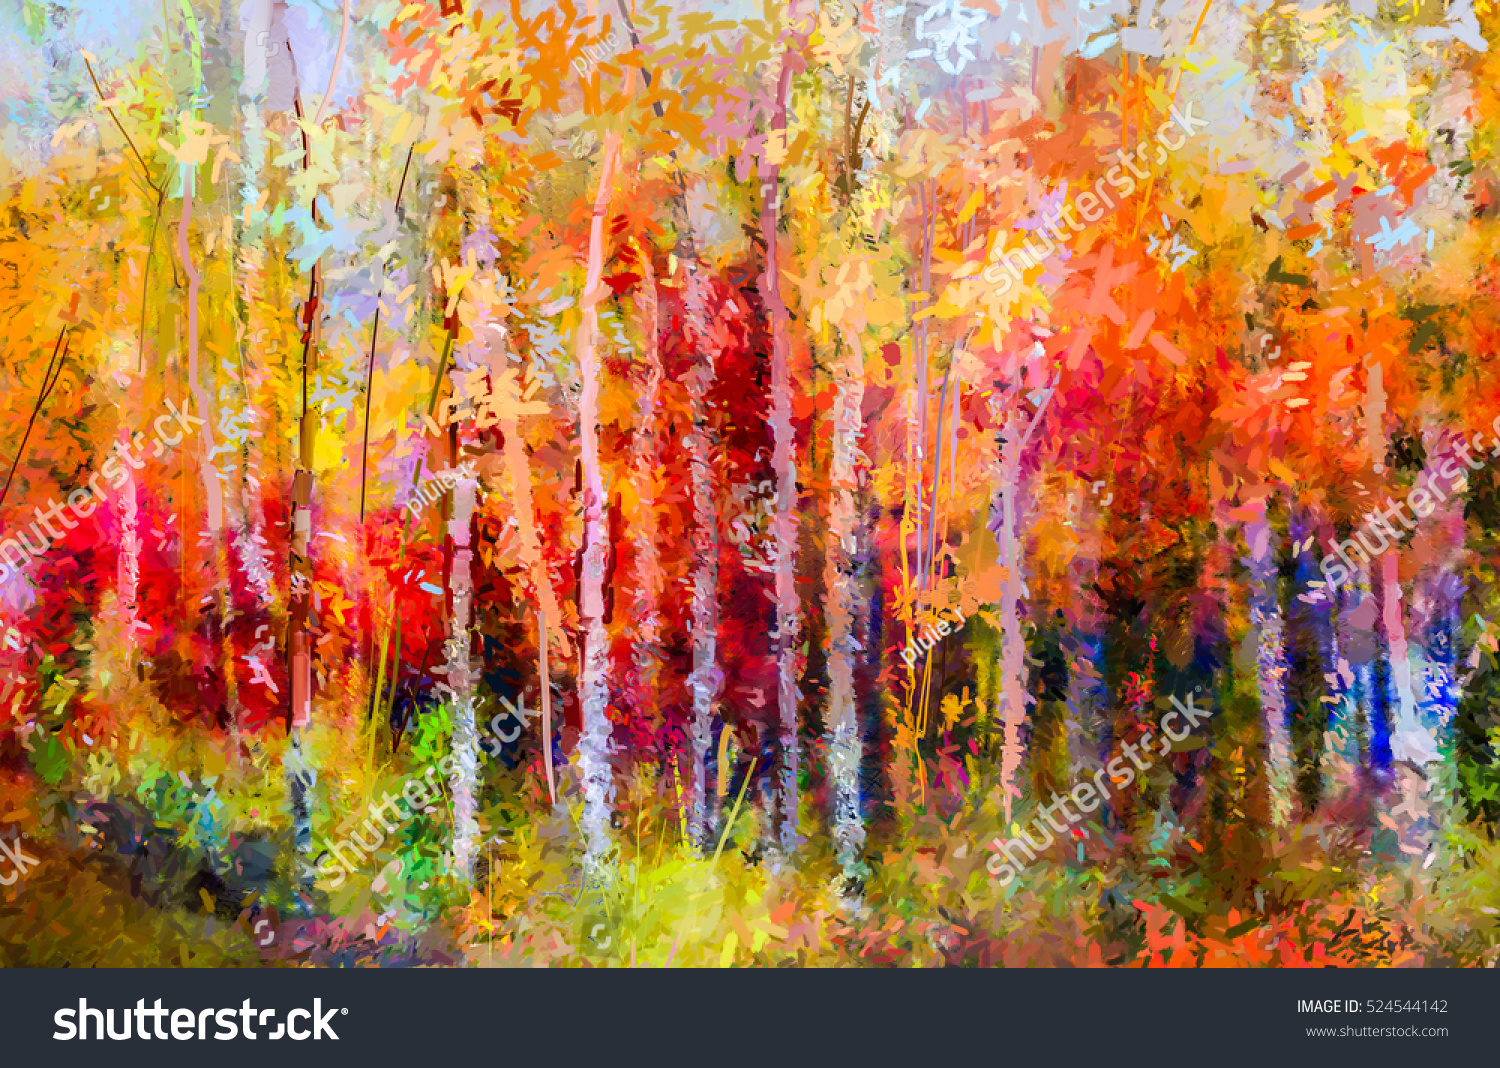 Oil Painting Landscape Colorful Autumn Trees Stock Illustration ...